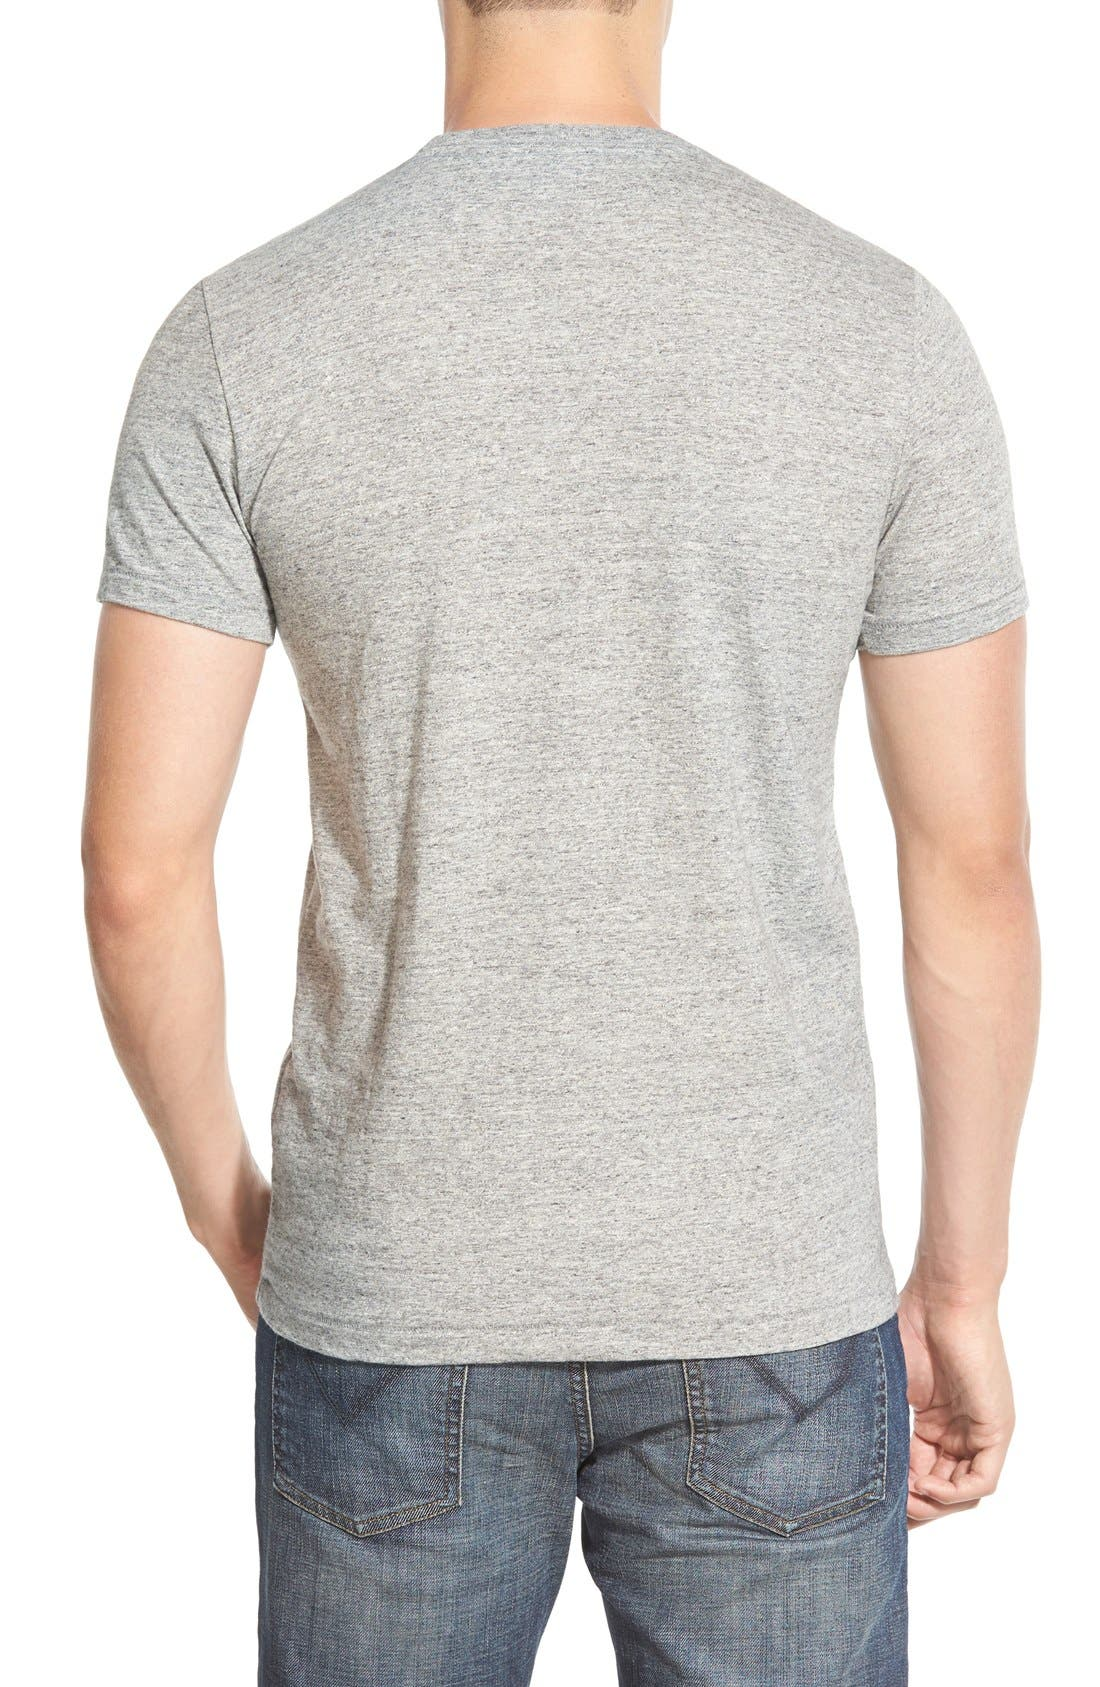 Double Face Jersey Pocket Crewneck T-Shirt,                             Alternate thumbnail 2, color,                             Anti-Grey Heather